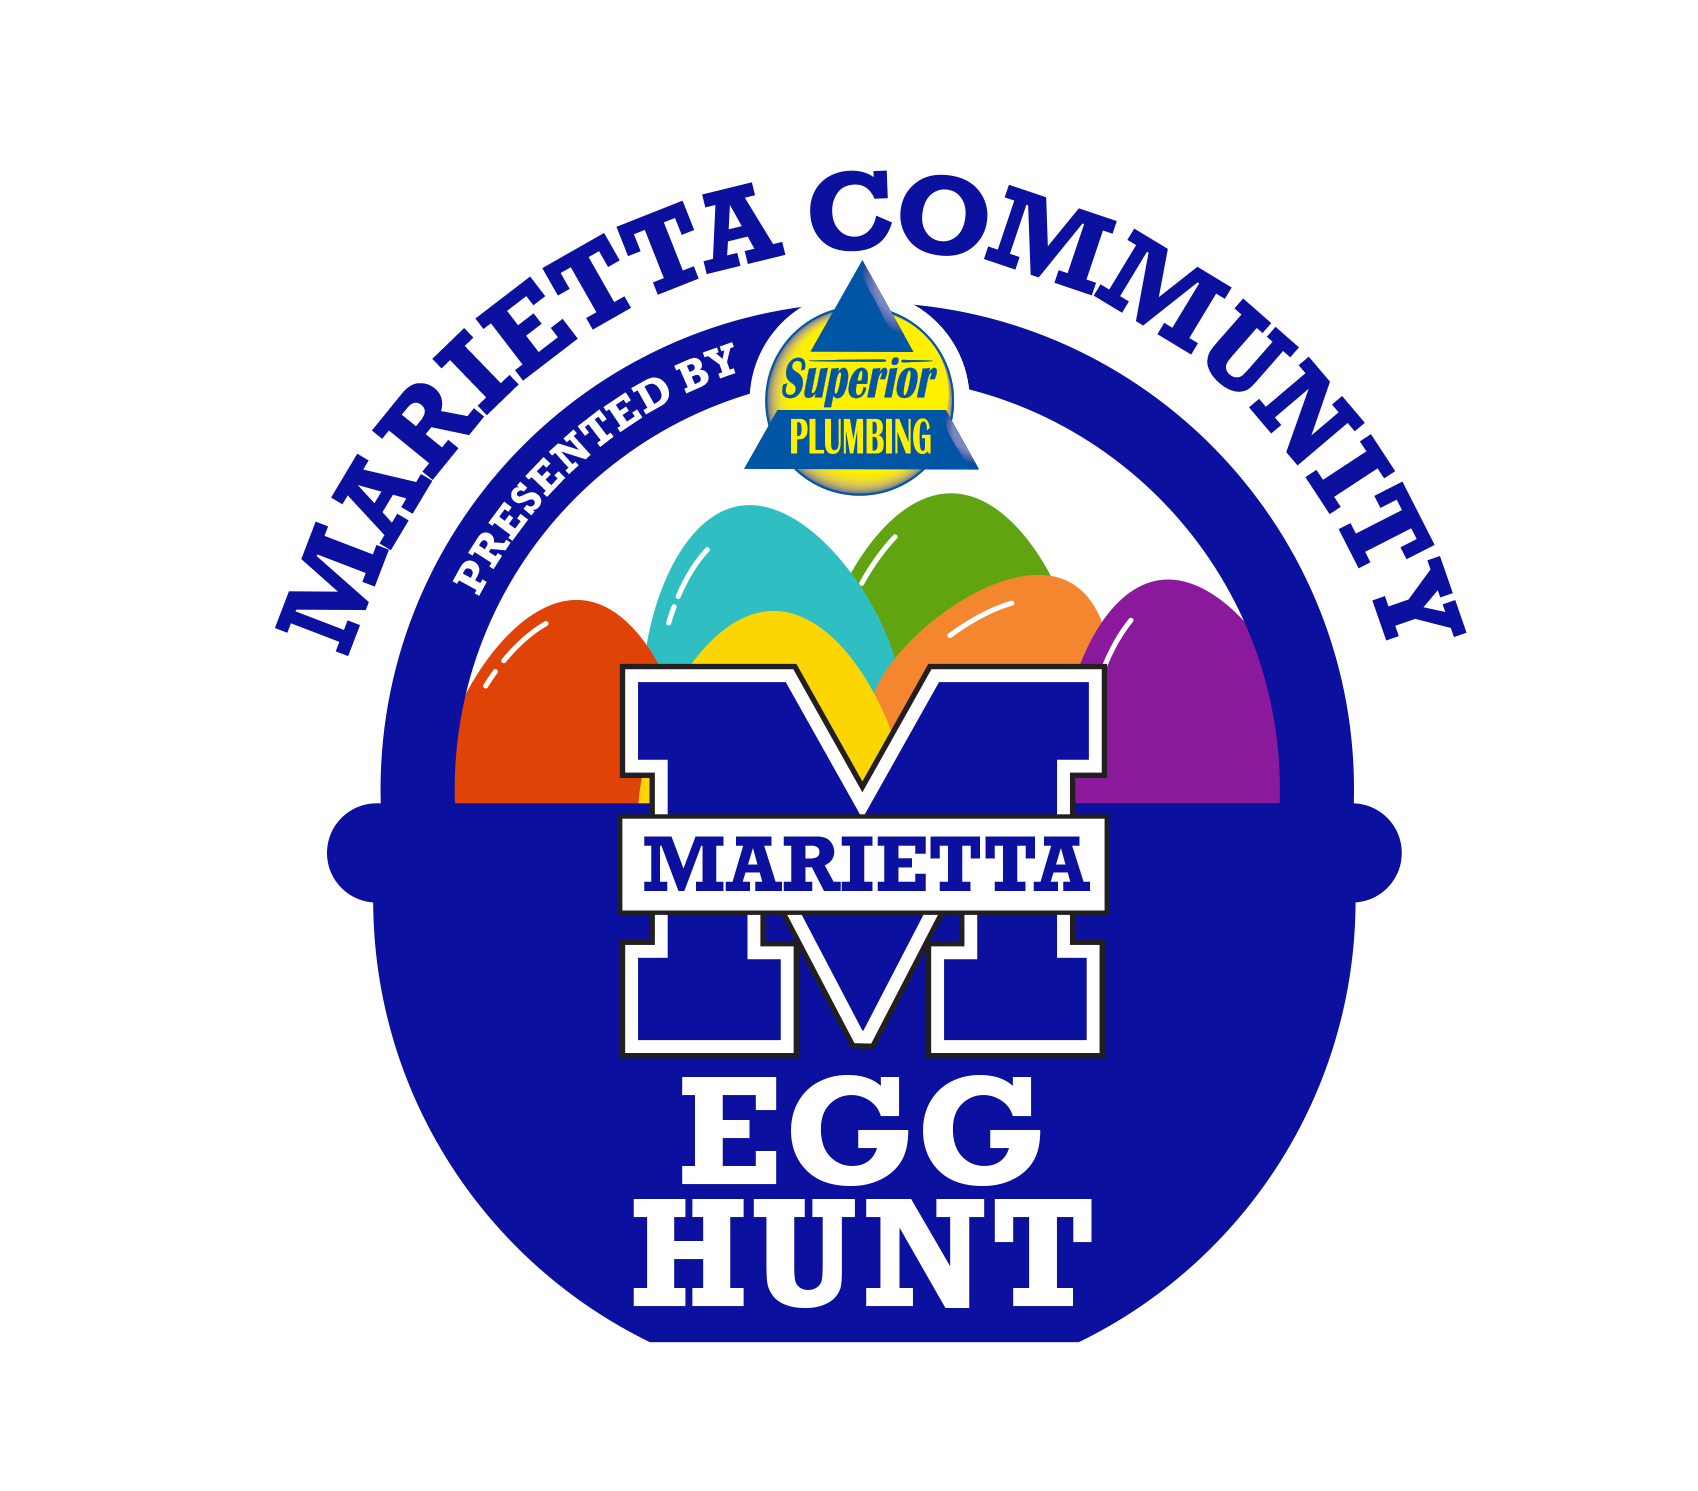 MariettaCommunity_EggHunt_Logos2-2.png